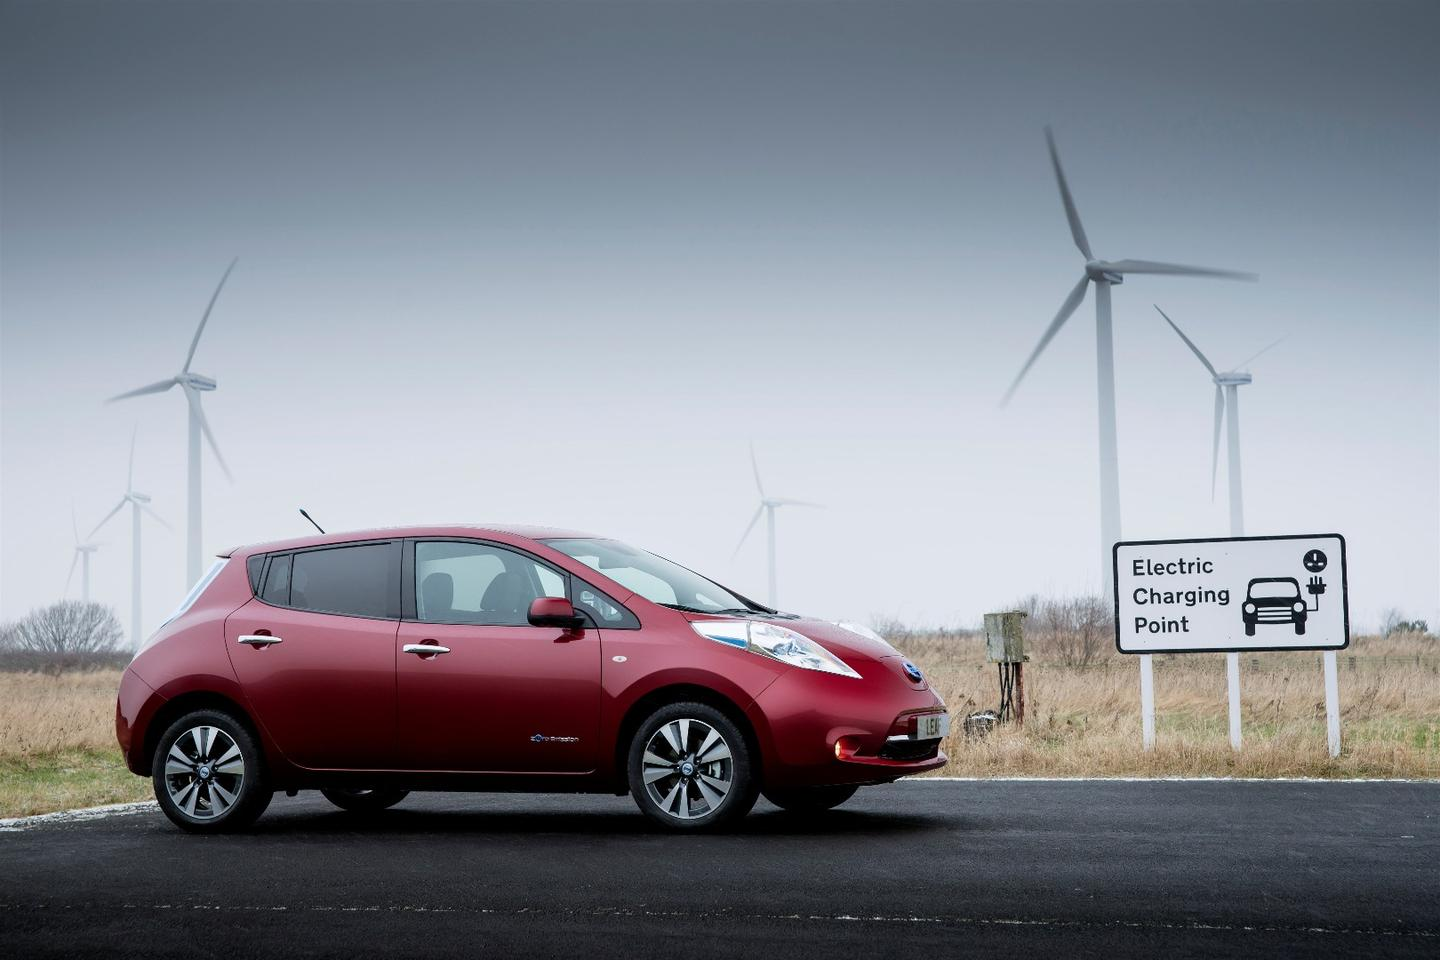 Nissan says there could be more EV chargers than gas stations in the UK by 2020